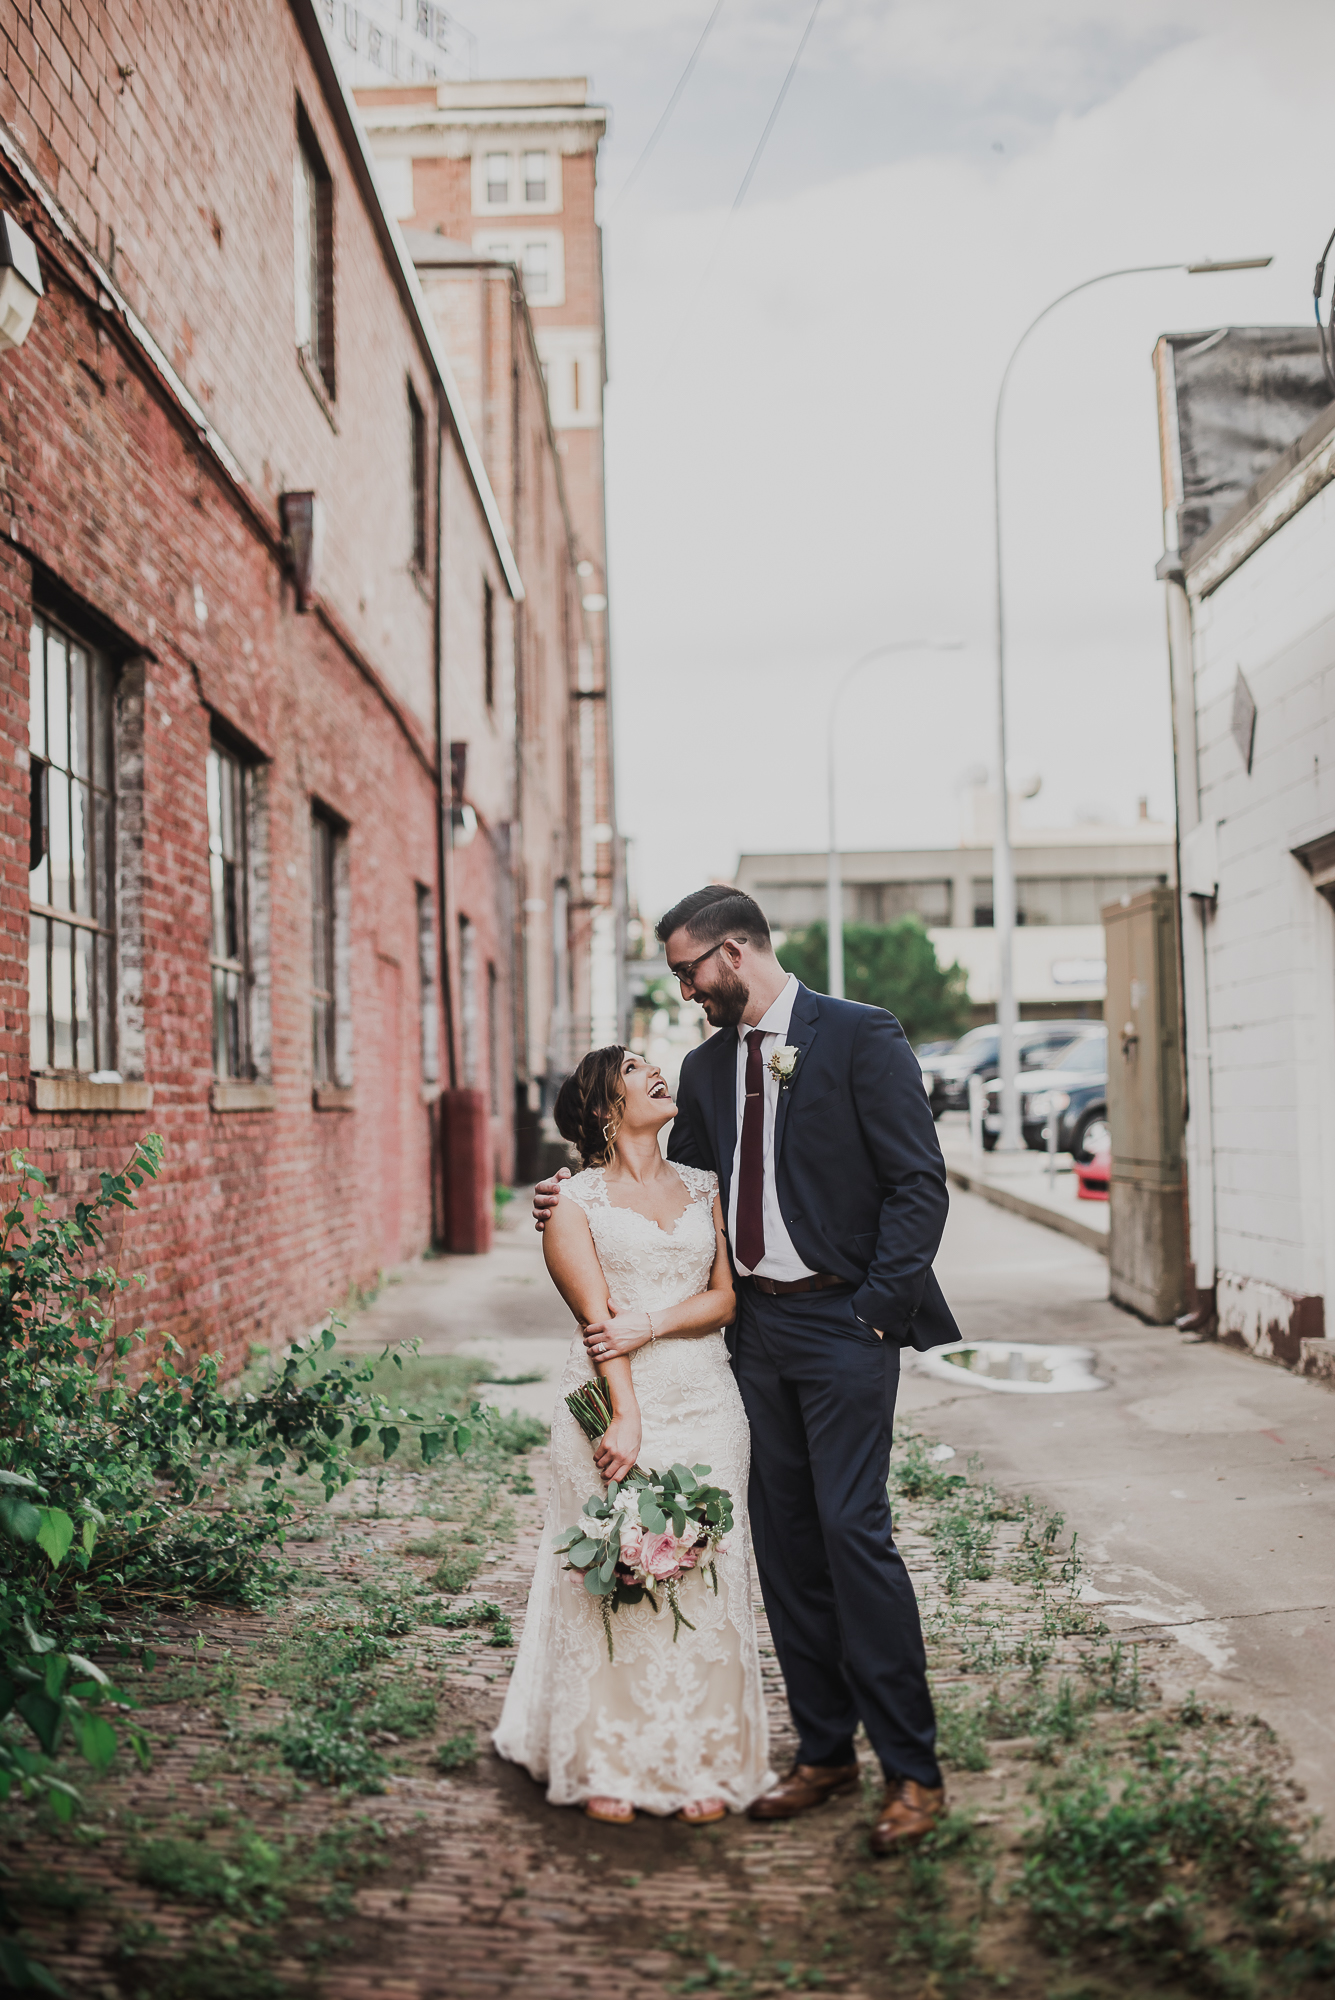 Melissa Cervantes Photography _ Kelsey + Ben Junebug Weddings Submission-100.jpg